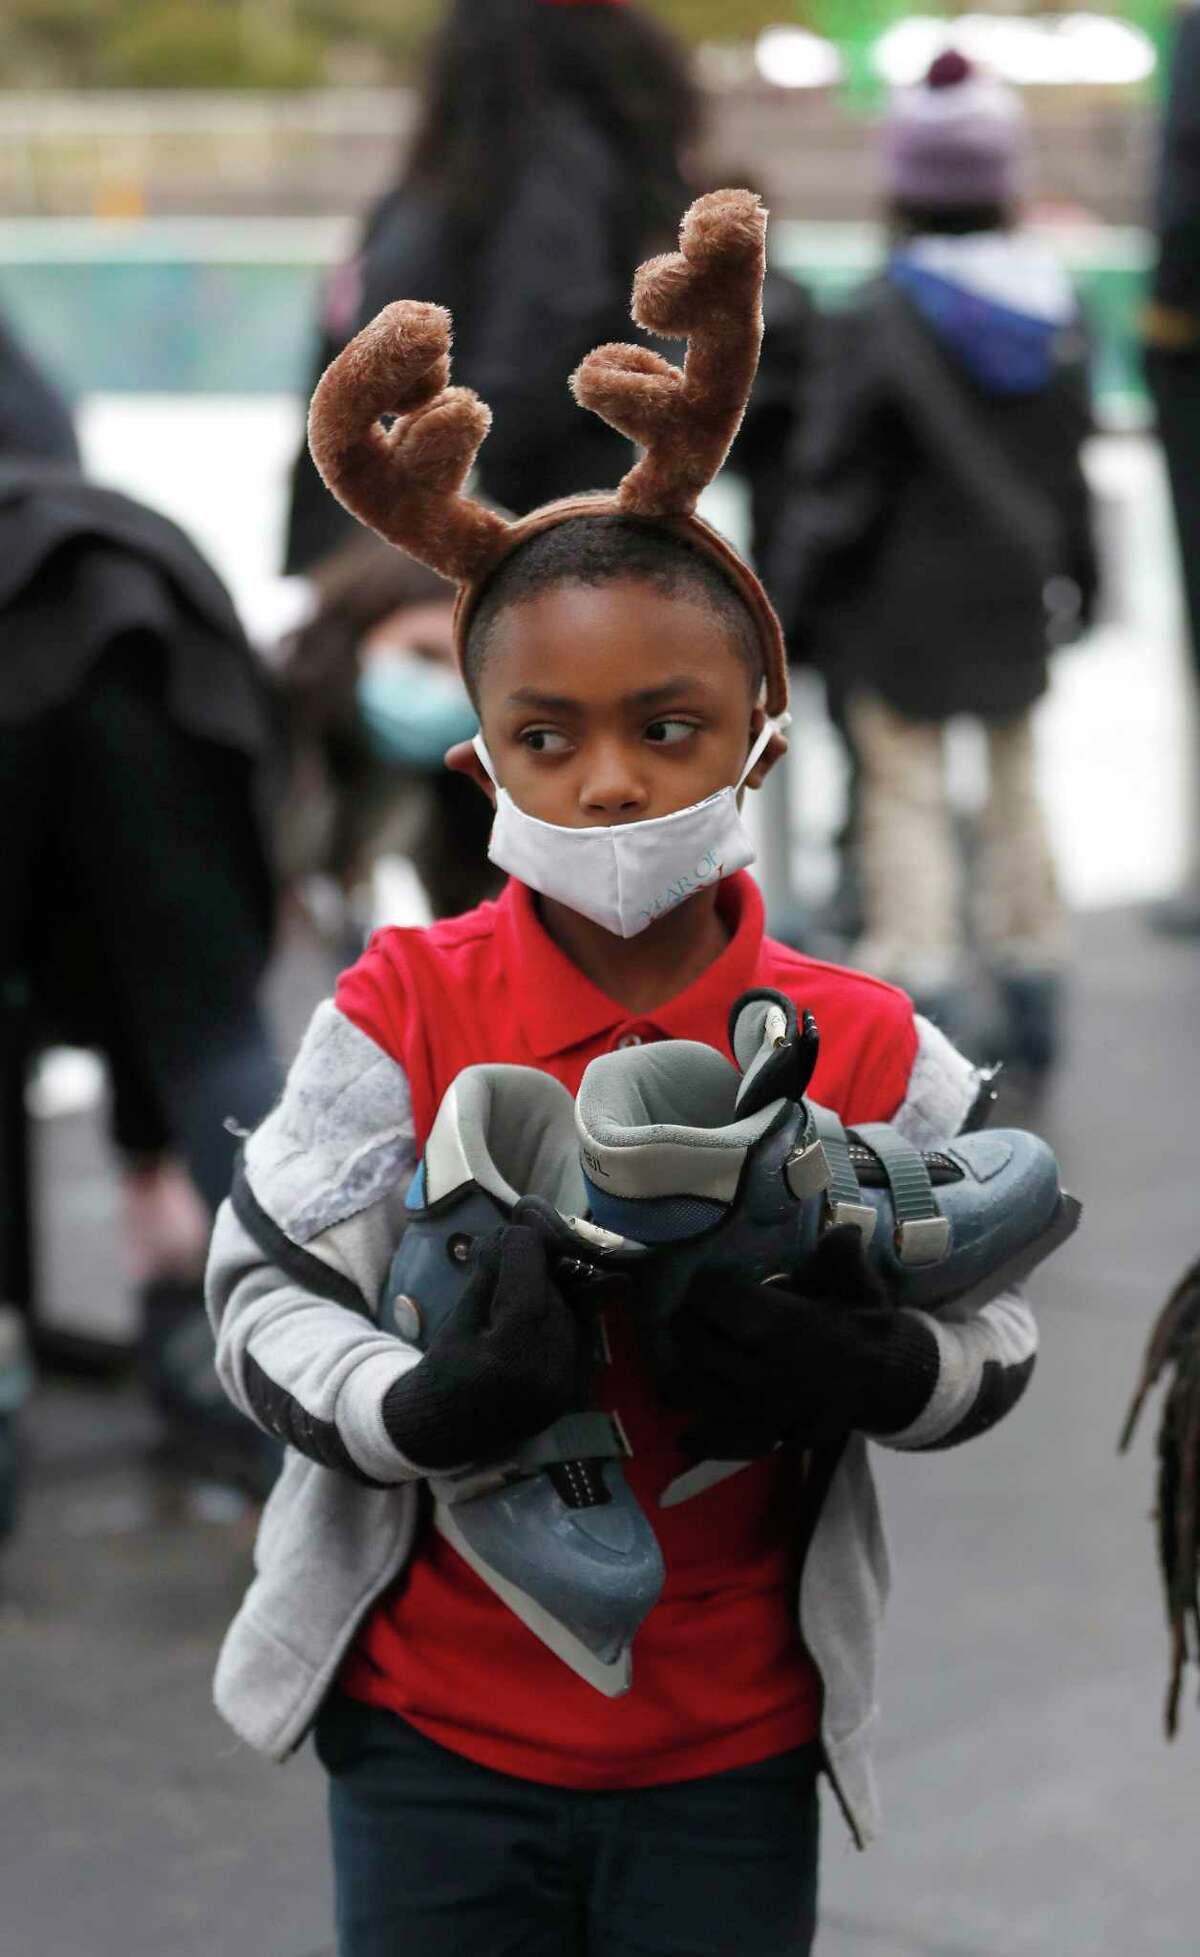 Kollyn Dugas, 5, center, carries his skates as he and other children from the Houston Southside Community Center skated during the 5th annual Year of Joy Holiday Ice Skating Party at Discovery Green.Monday, December 14, 2020, in Houston.